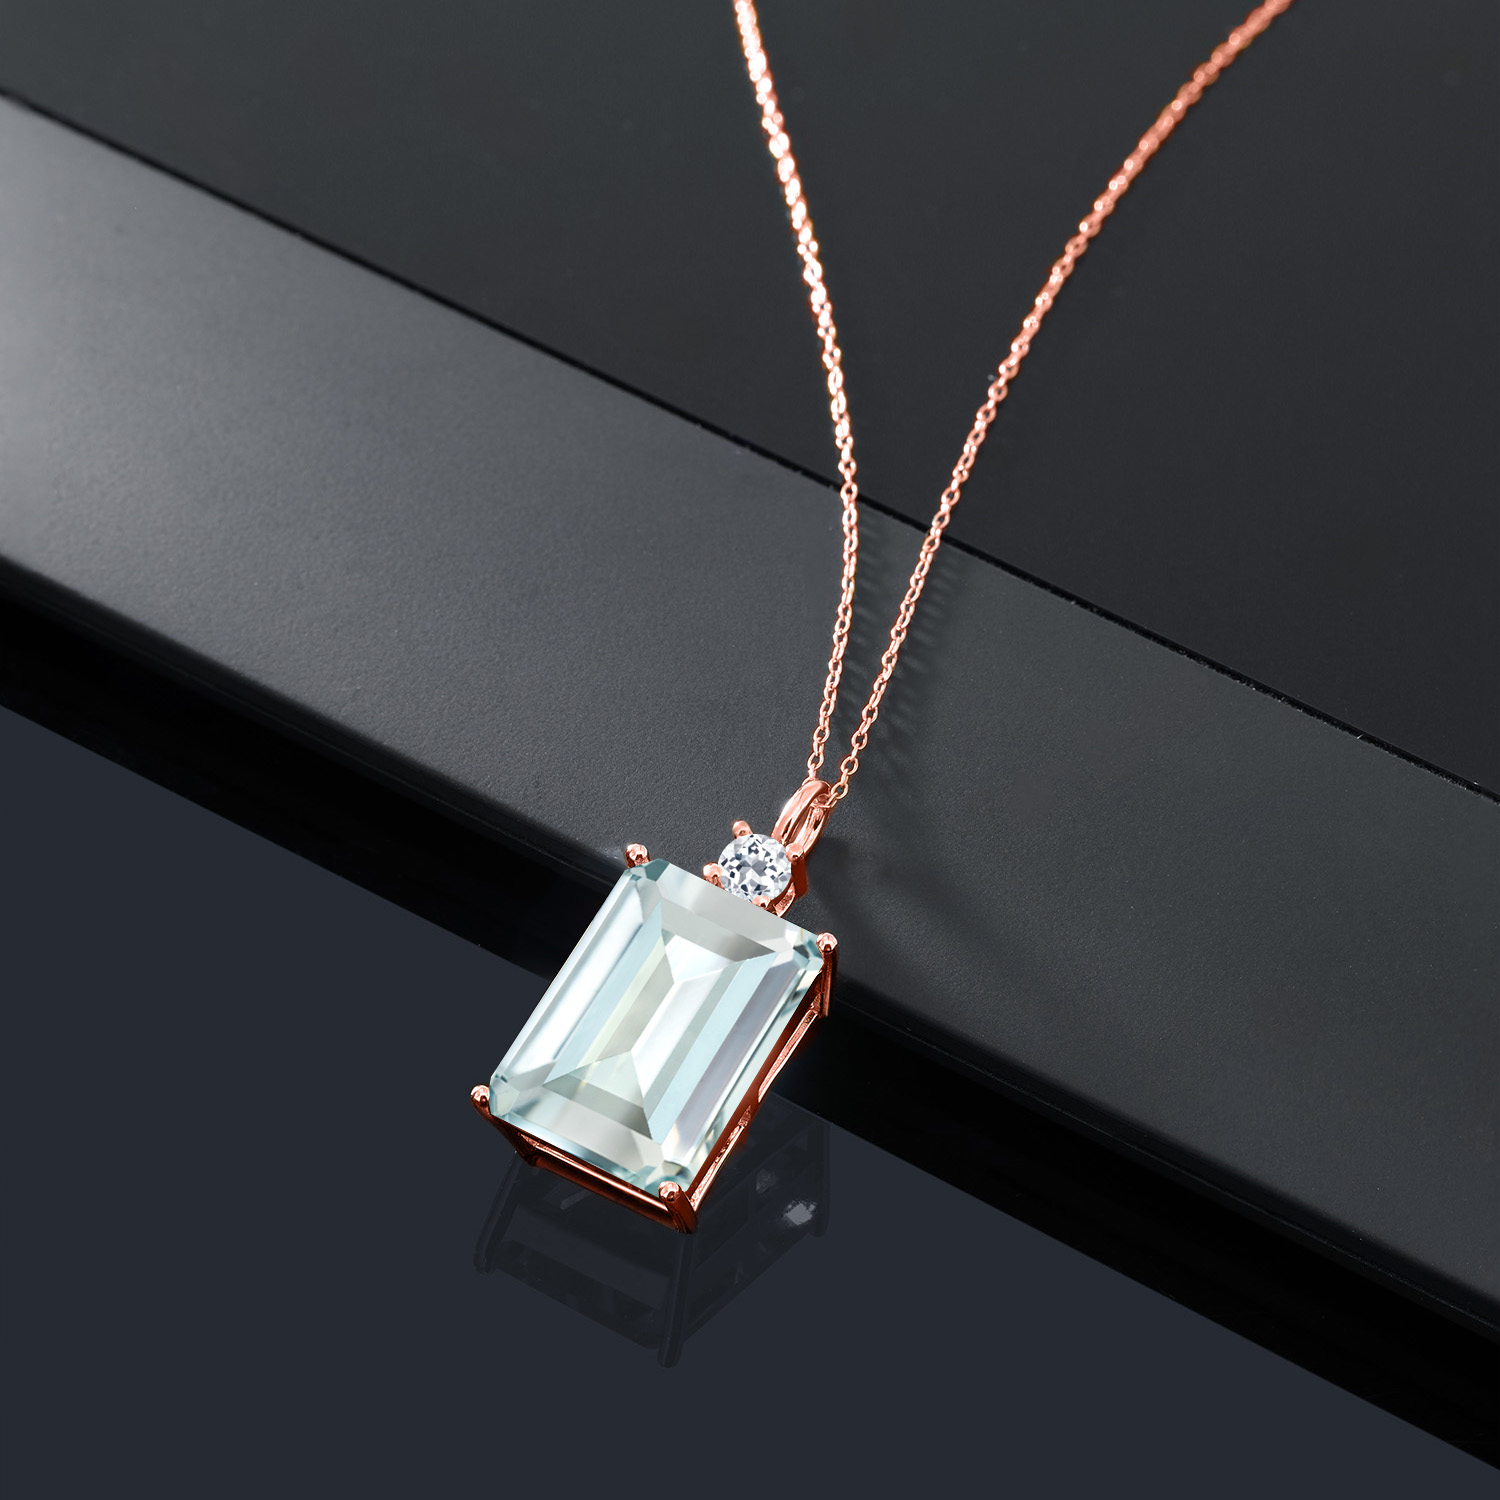 Gem Stone King 0.76 Ct Heart Shape White Simulated Opal White Topaz 18K Rose Gold Plated Silver Pendant with 18 inches Chain